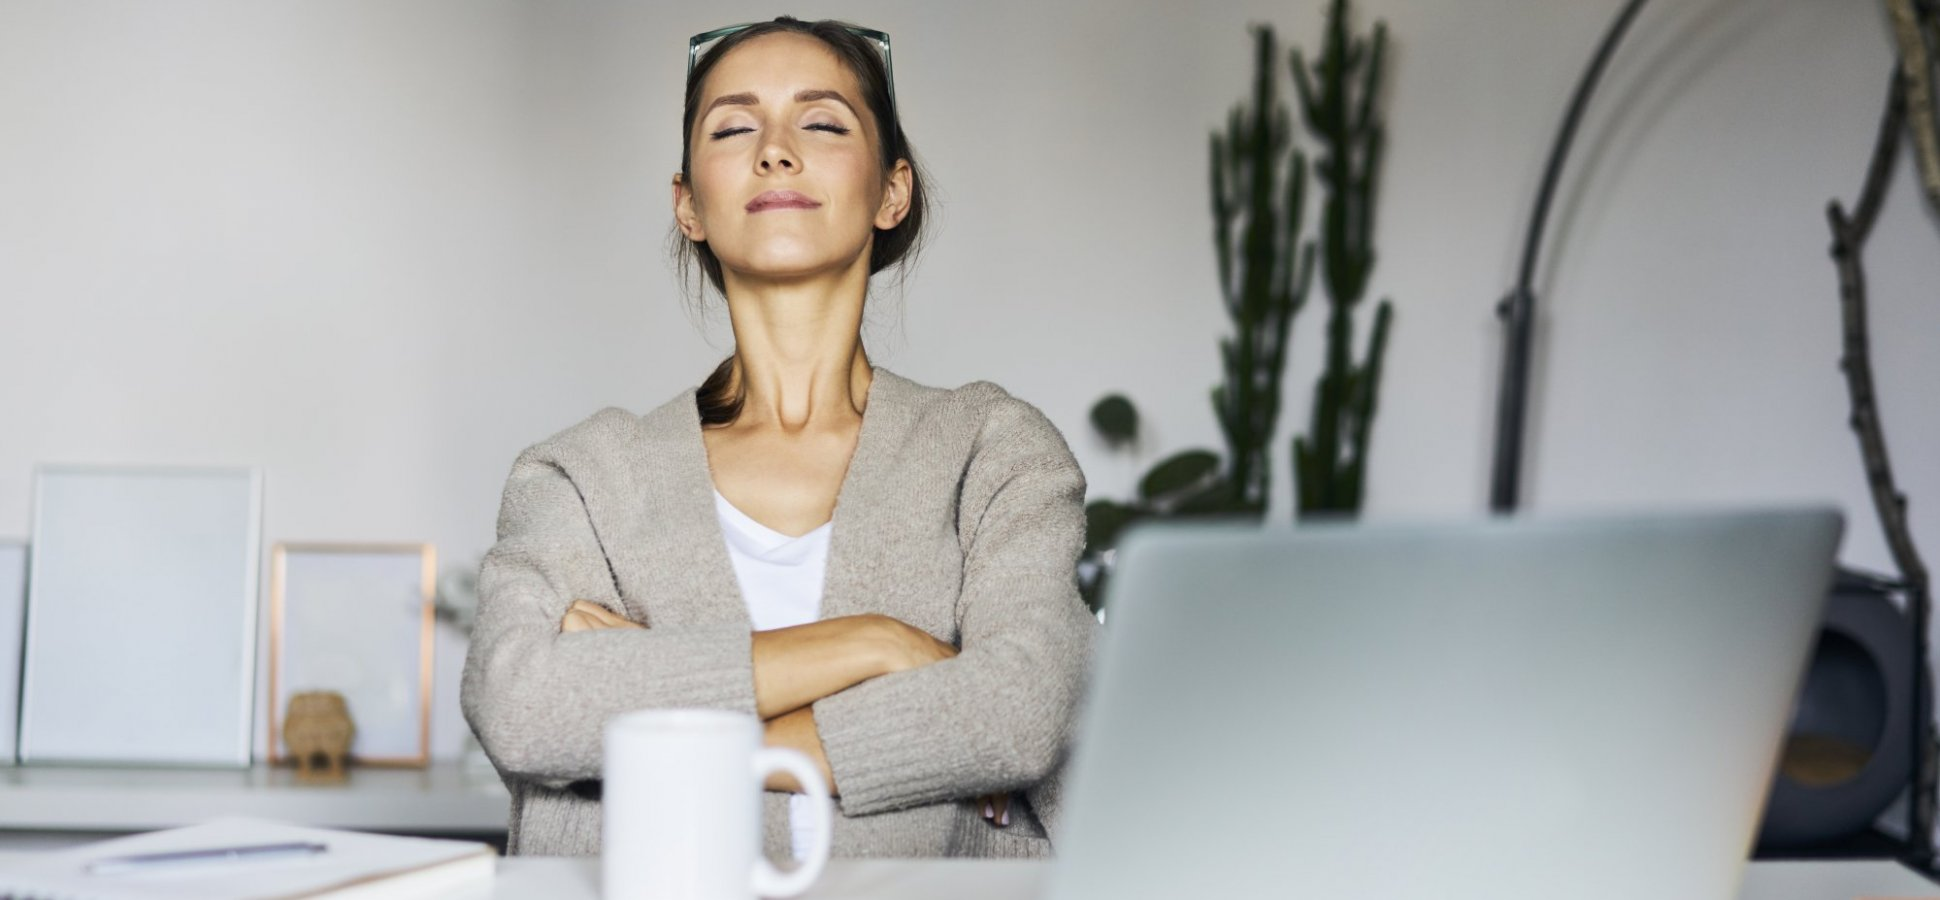 How To Increase Productivity And Focus In 5 Minutes